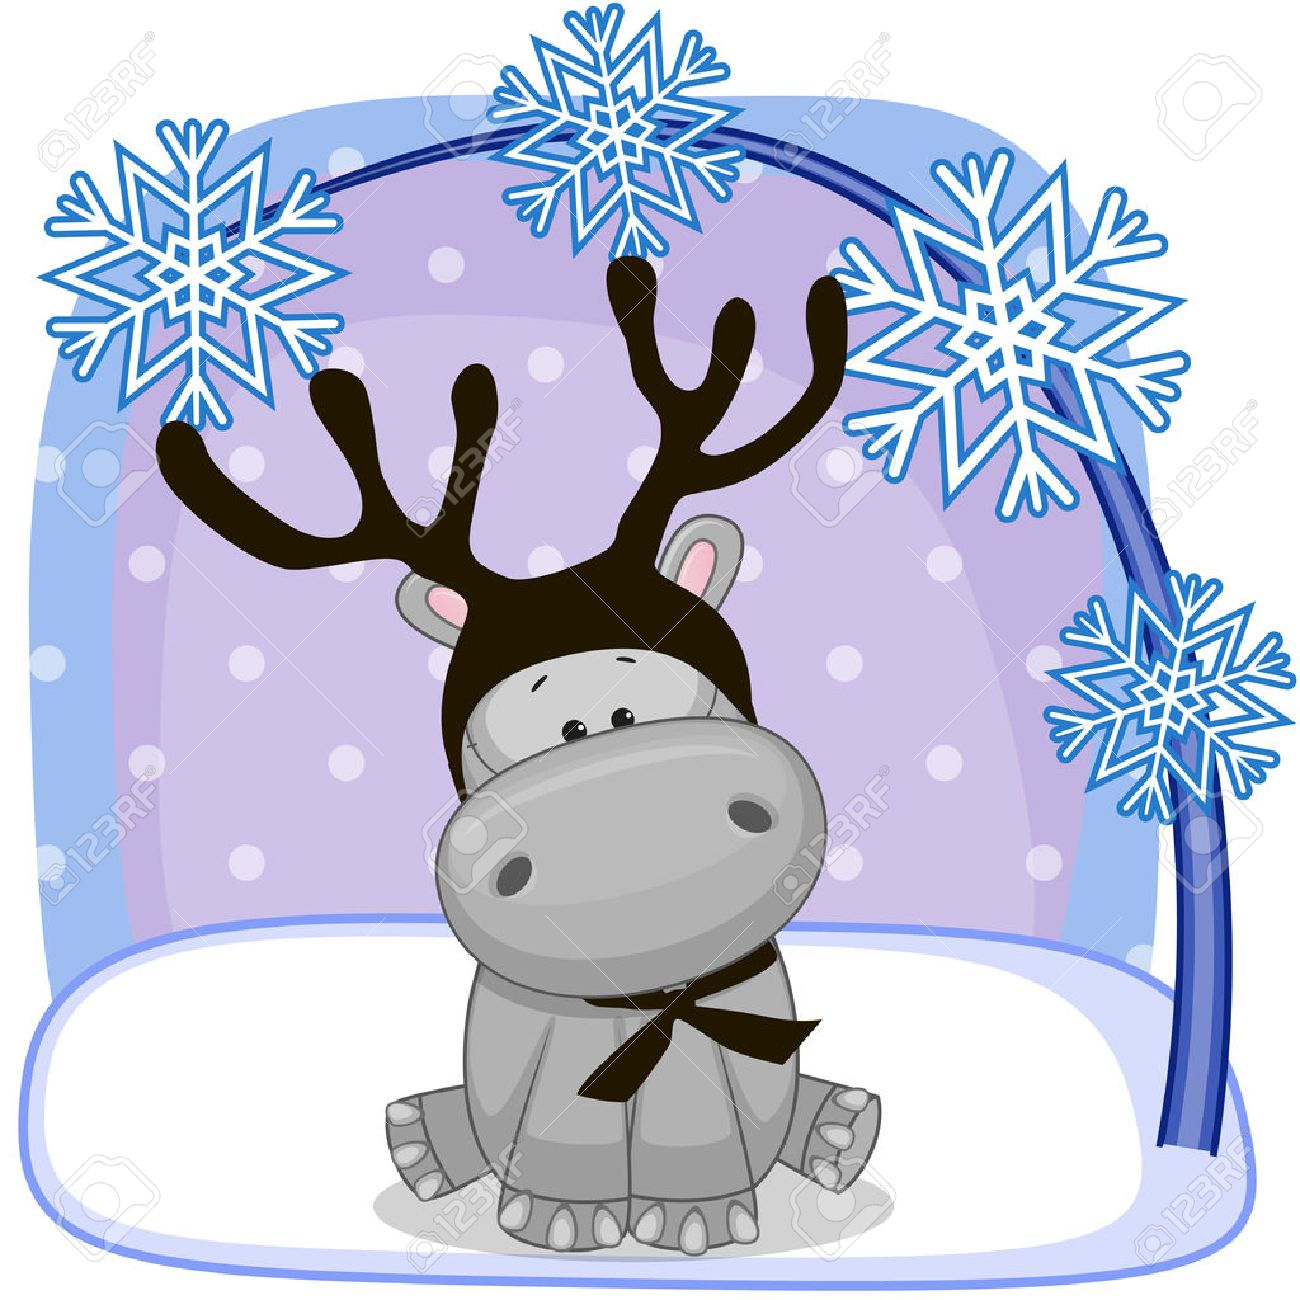 Christmas Illustration Of Cartoon Hippo With Antlers Royalty Free ...